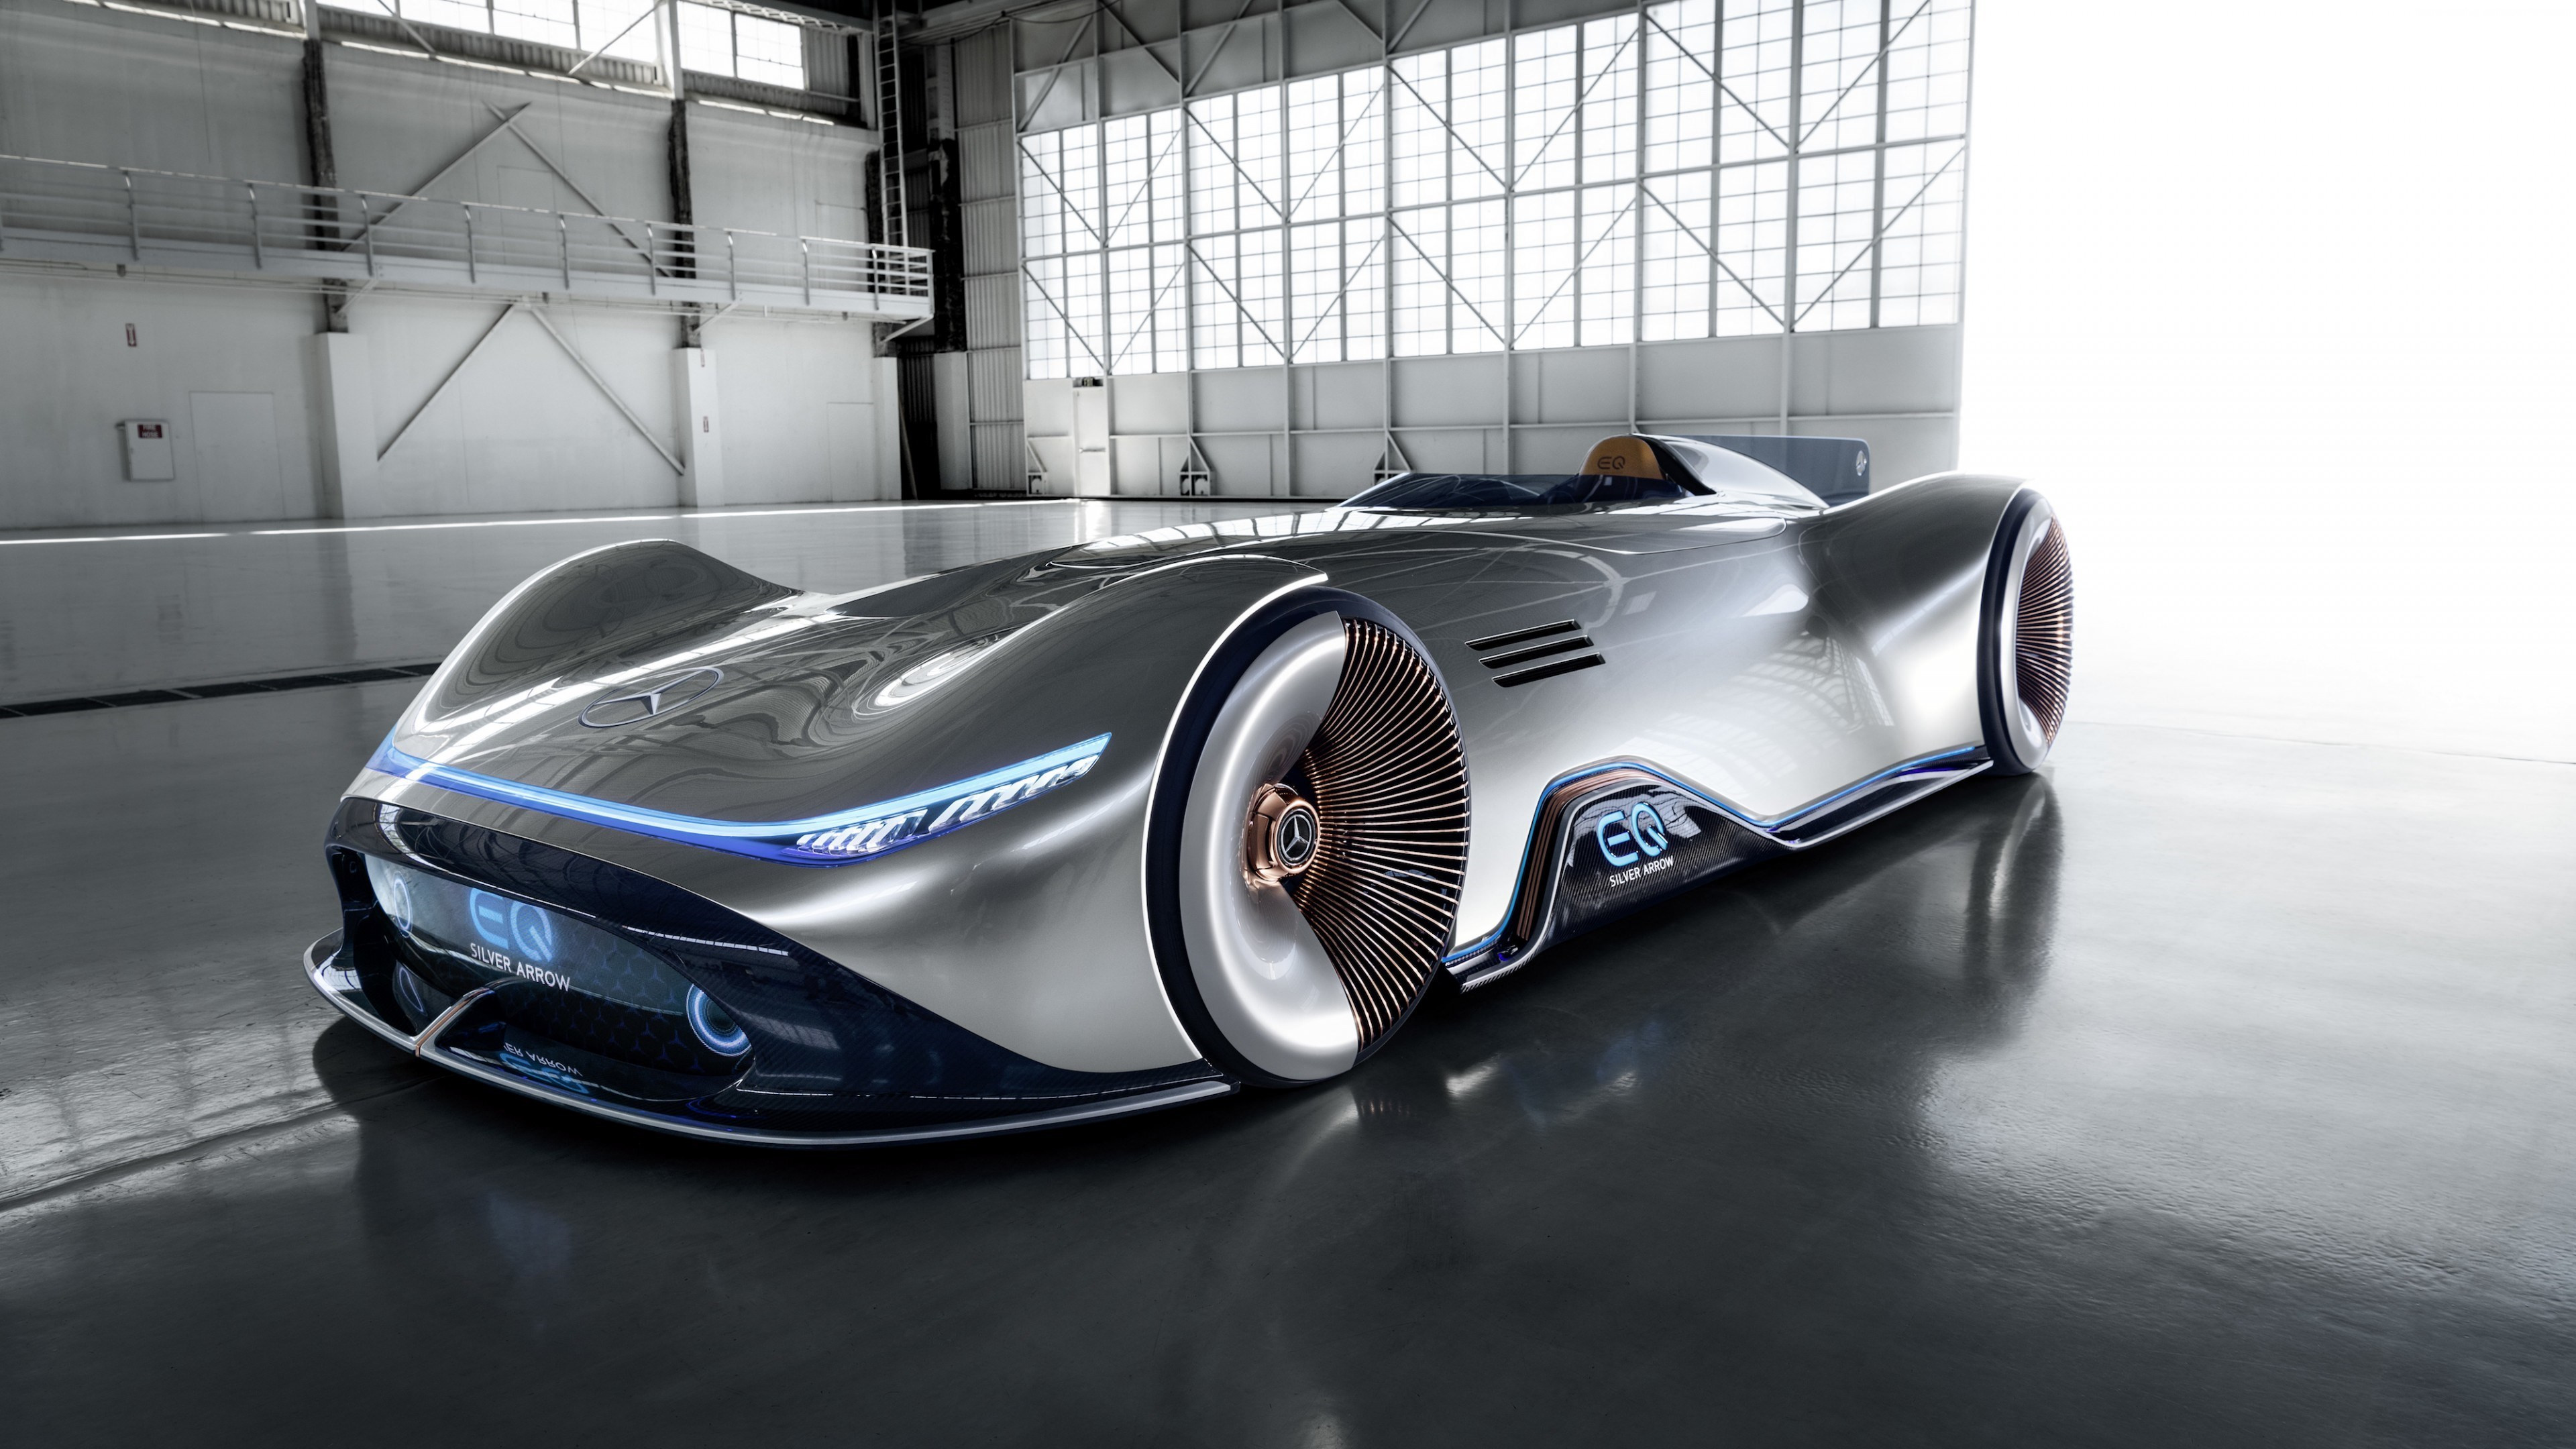 Mercedes Benz Vision EQ Silver Arrow | 3840x2160 wallpaper